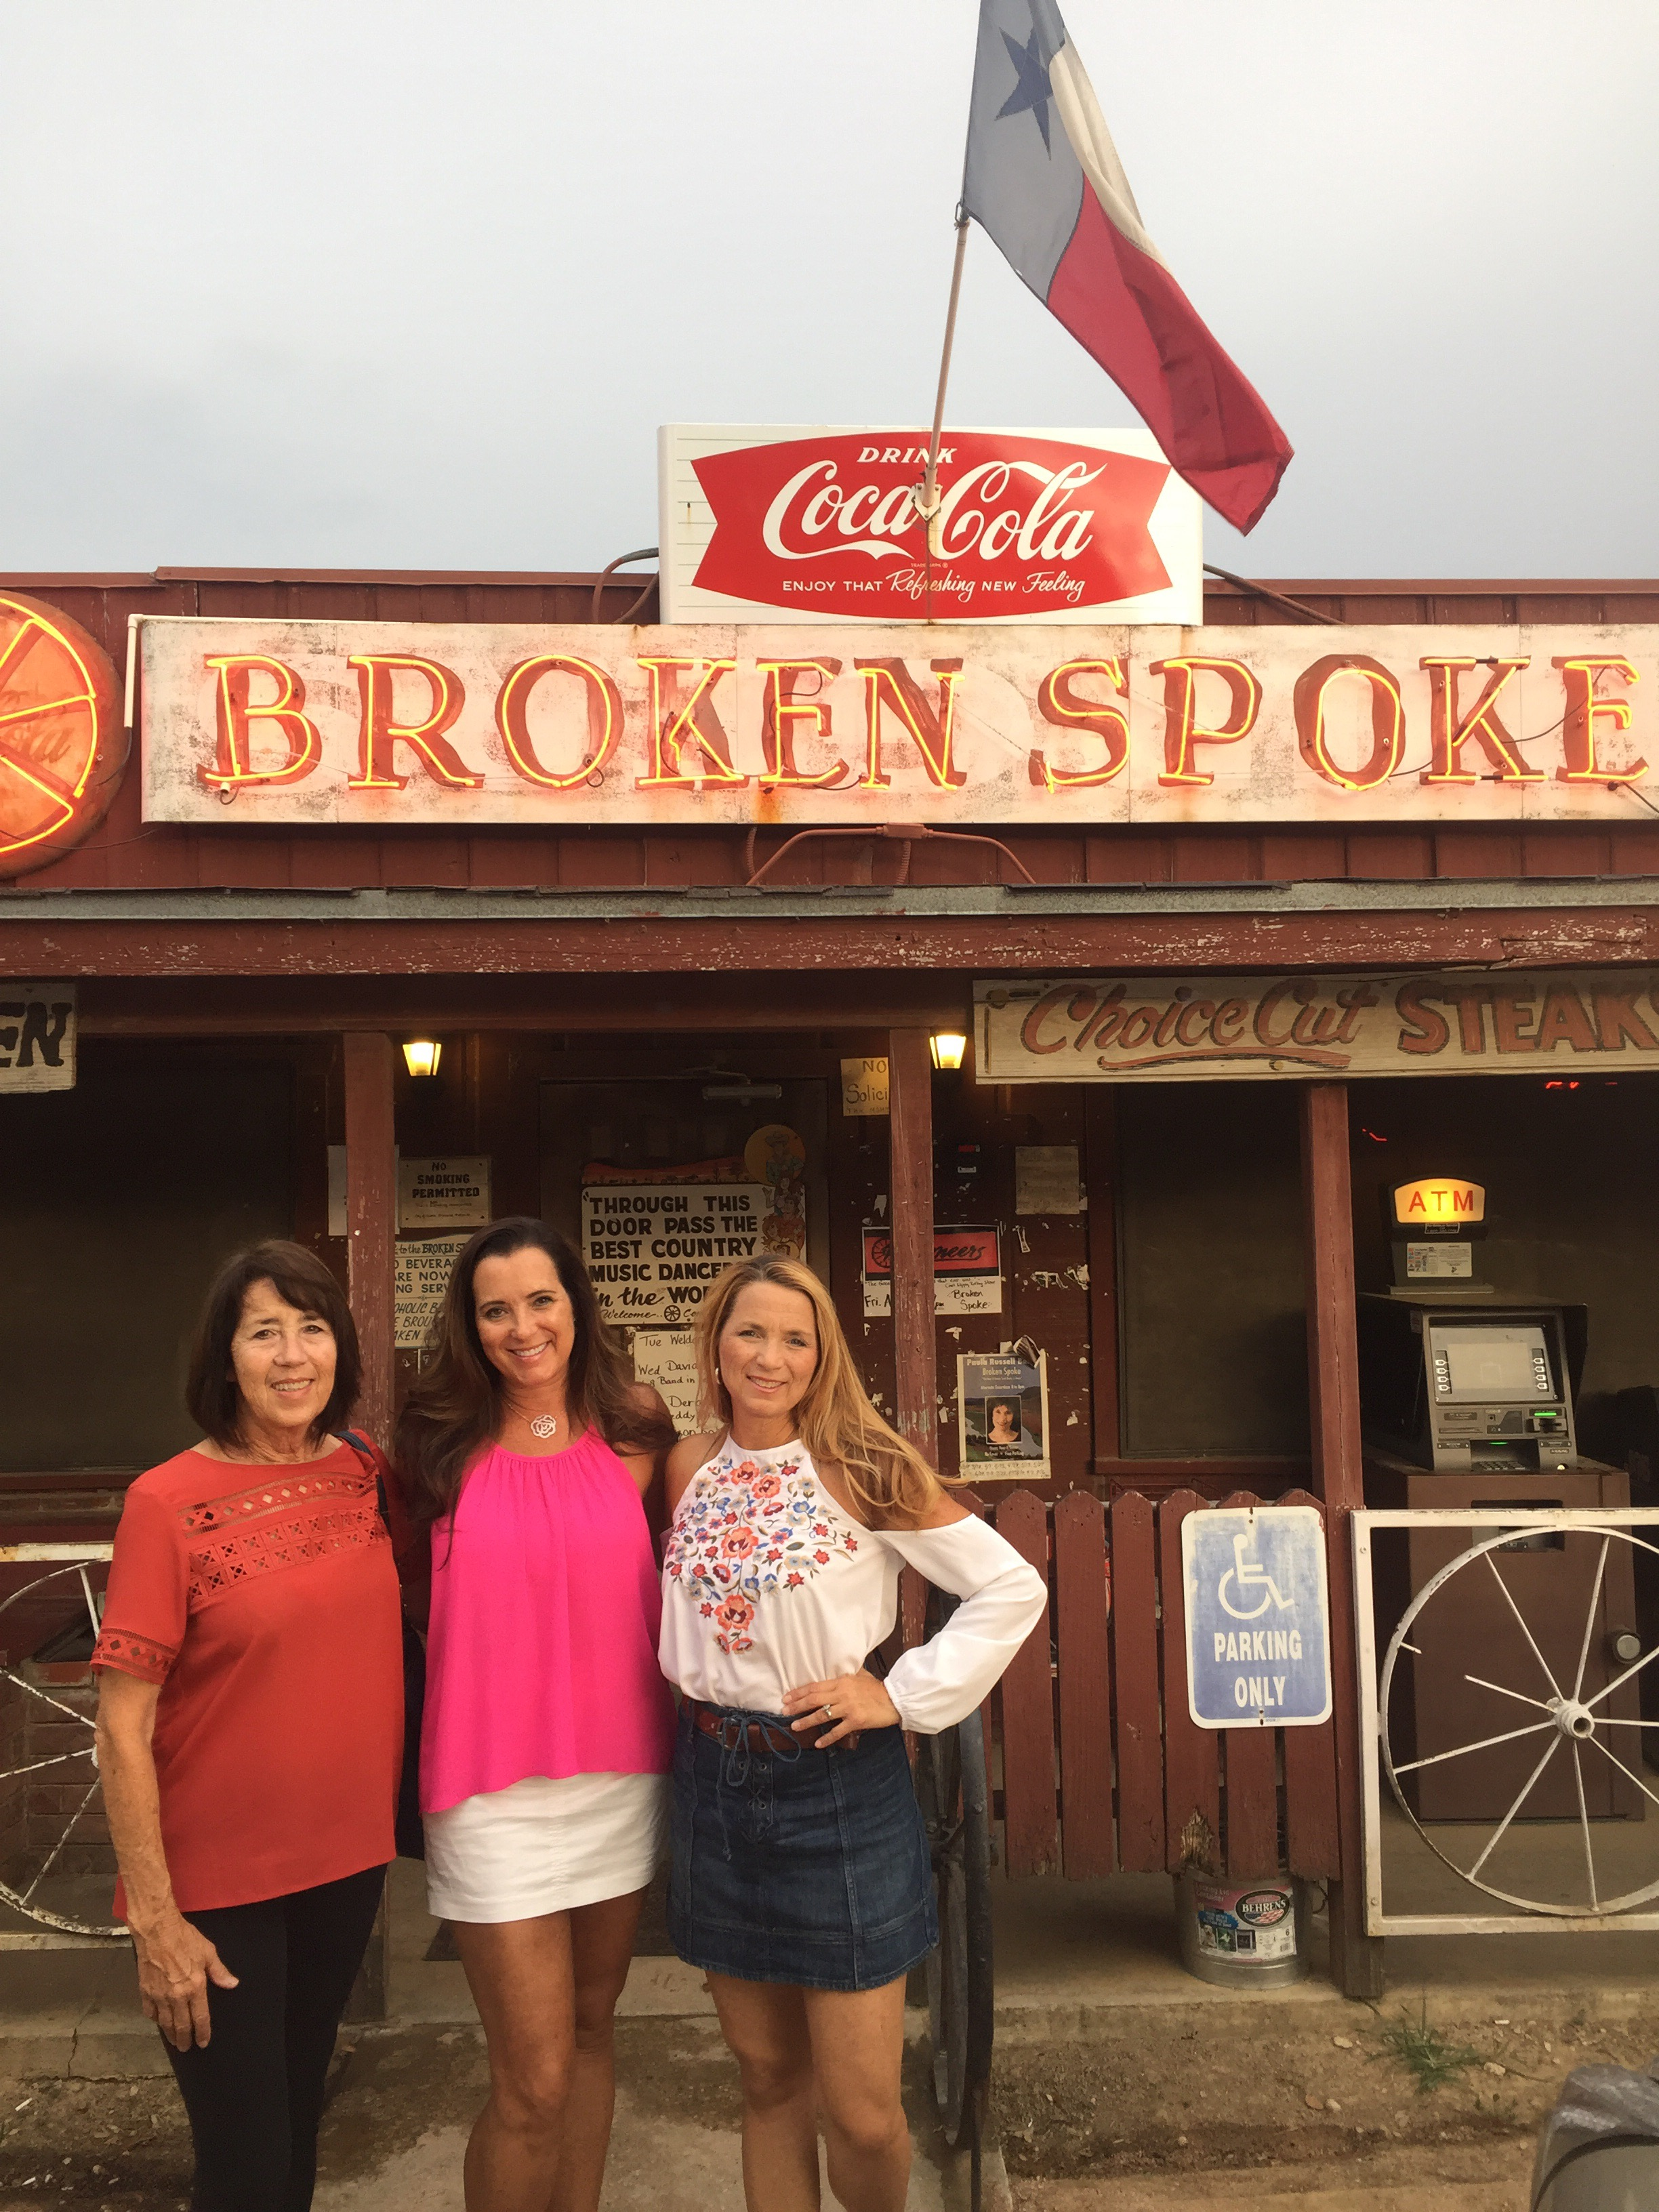 Donna, me, and Kimberly at the Broken Spoke